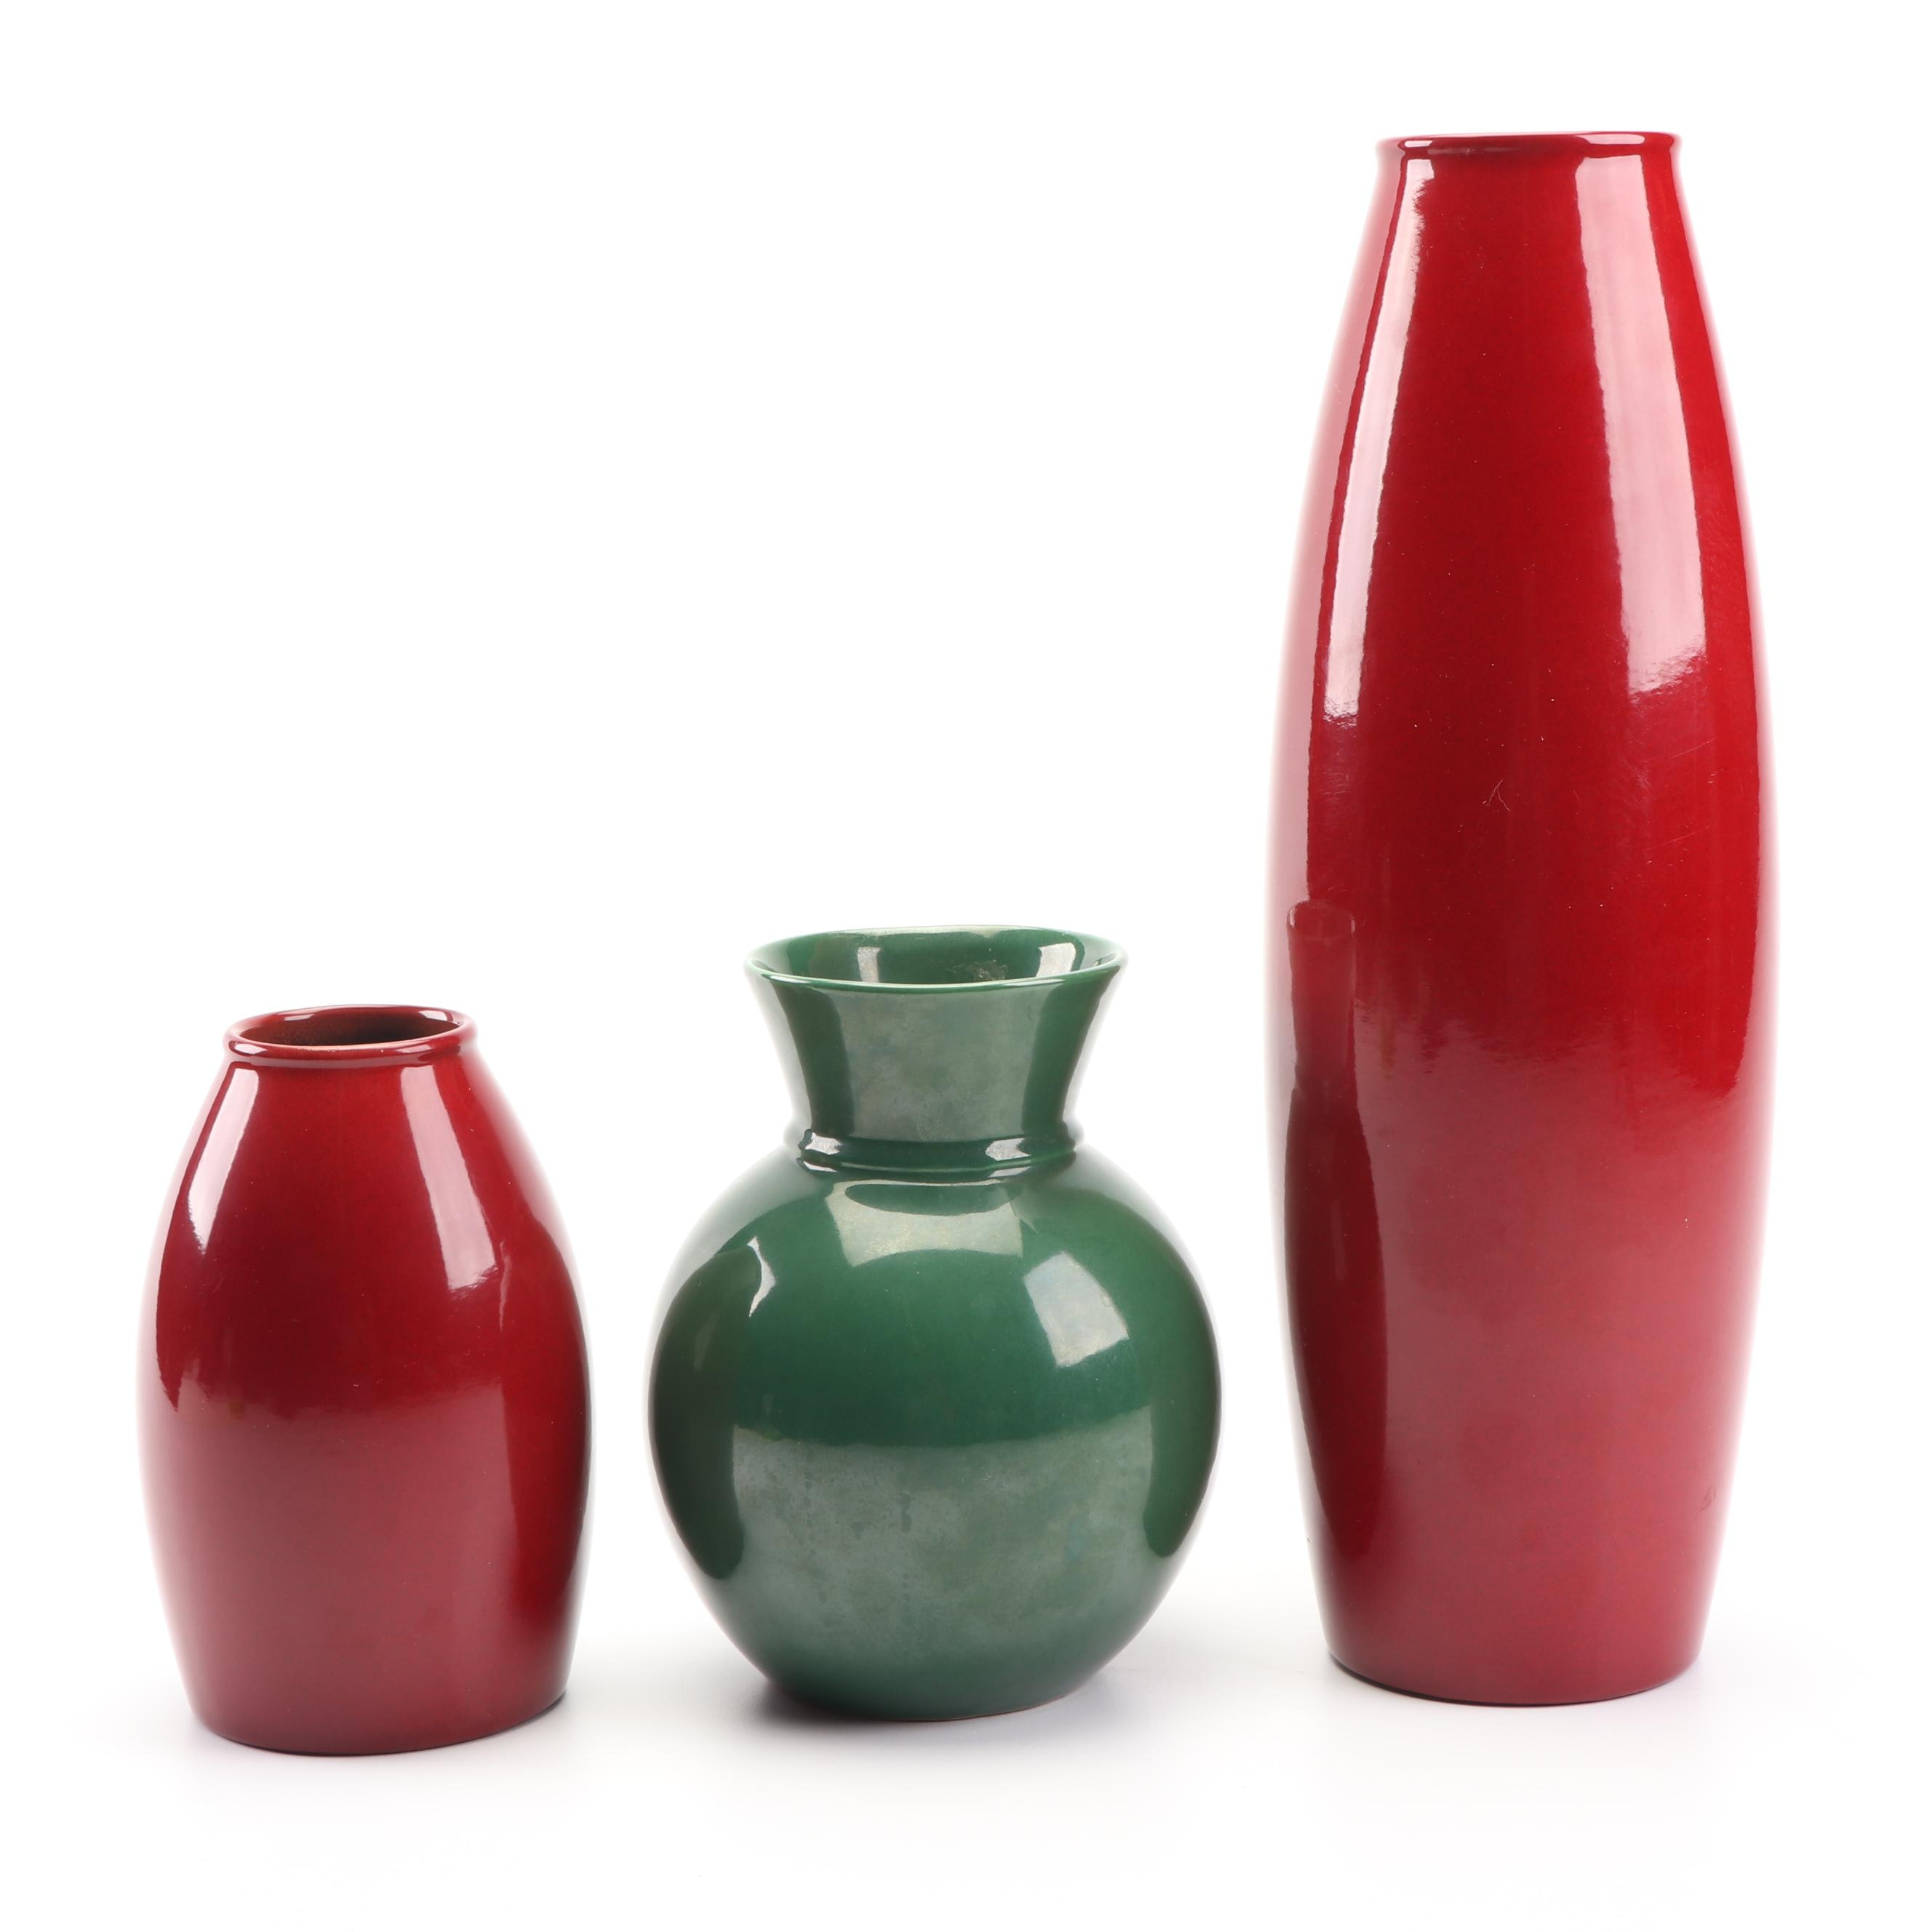 Scheurich German Ceramic Vases